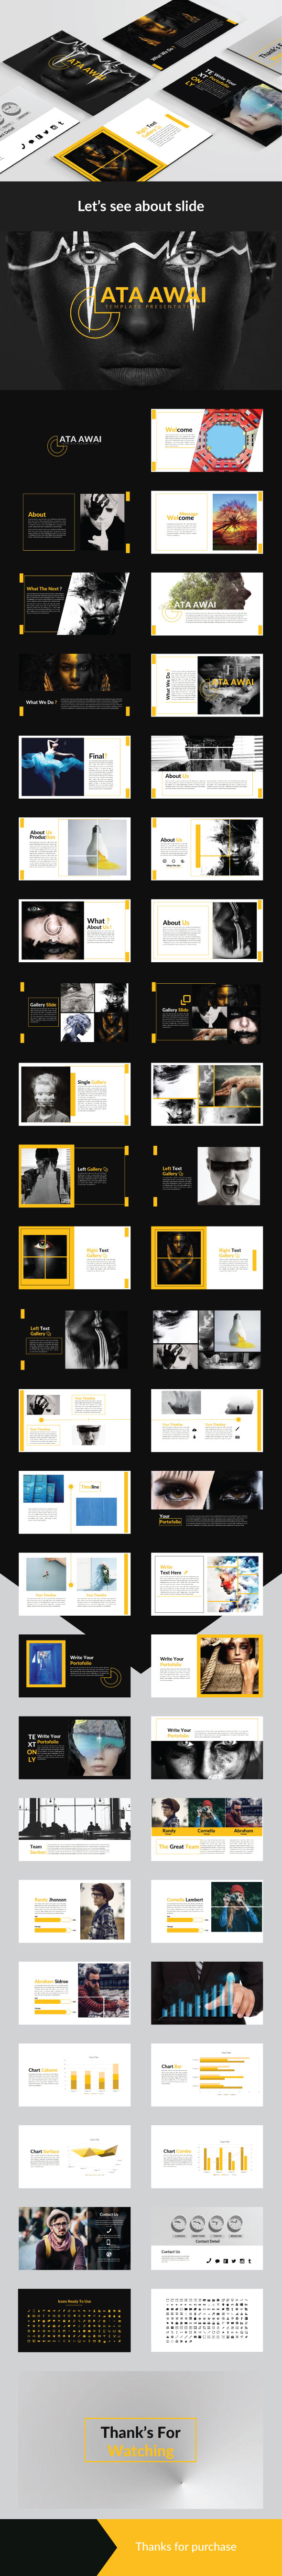 Ata Awai Presentation Keynote Template - Creative Keynote Templates